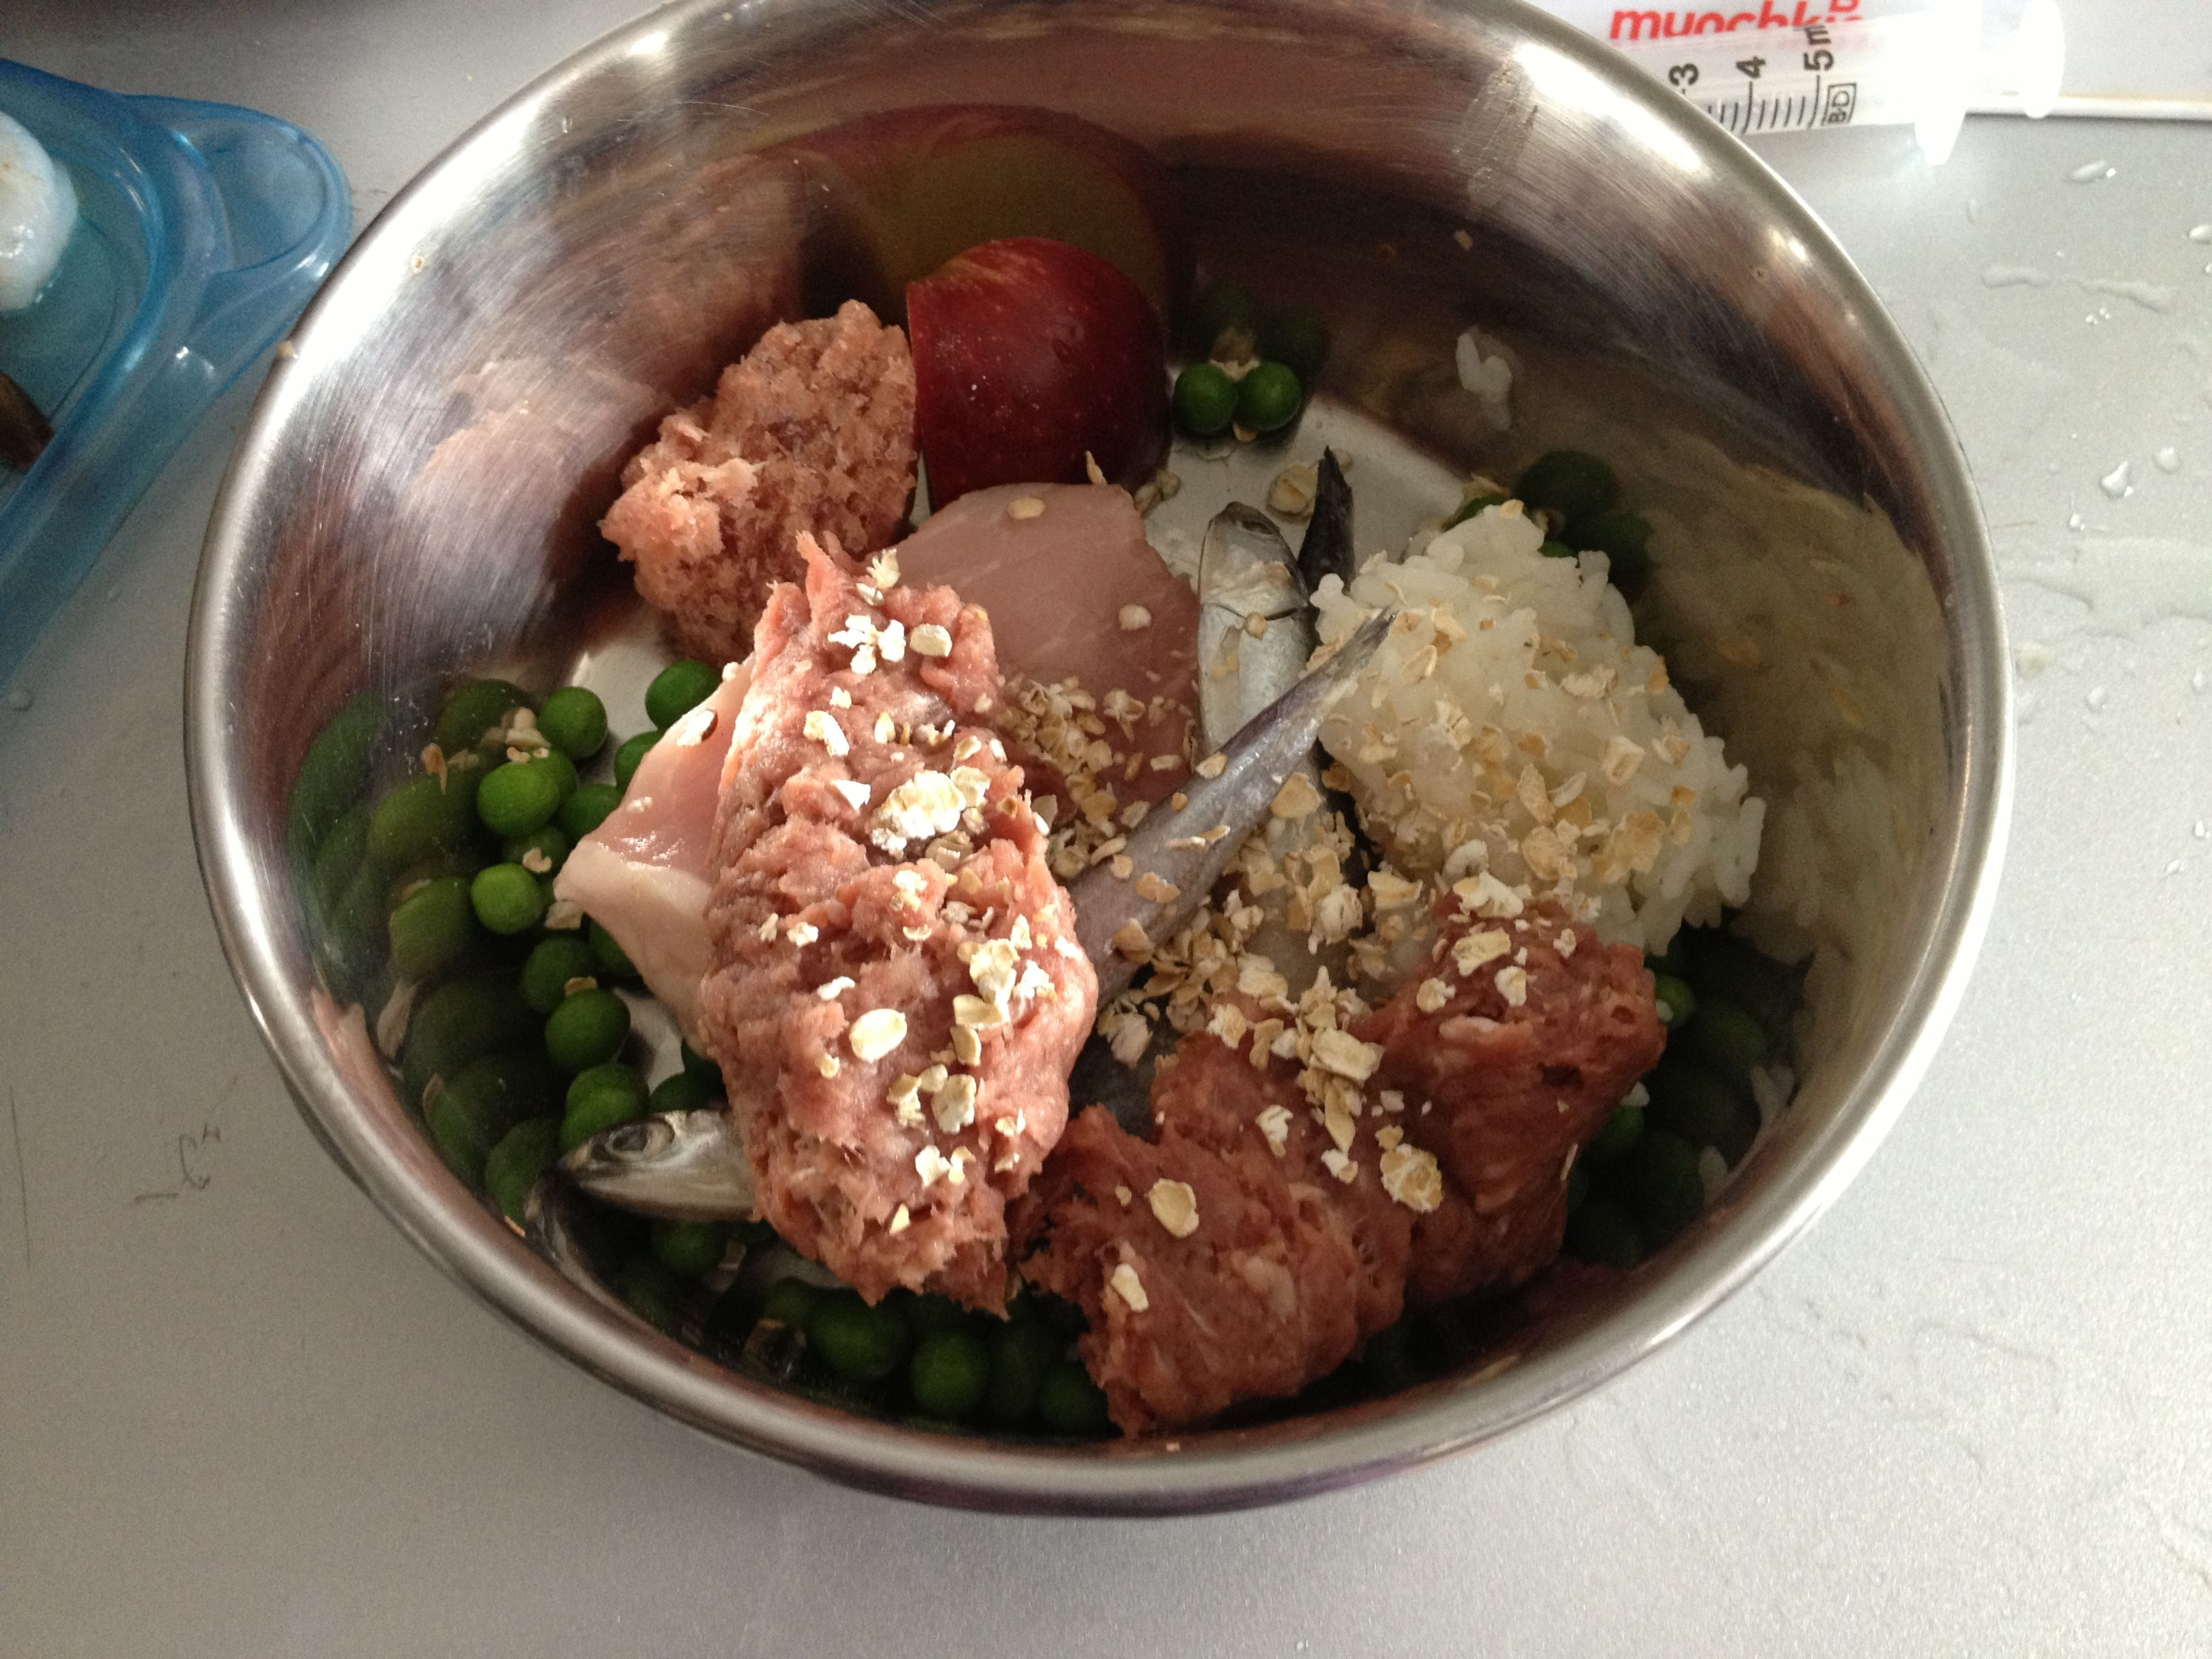 Learn latest homemade dog food recipes for your pet dogs and serve learn latest homemade dog food recipes for your pet dogs and serve them a healthy food forumfinder Gallery